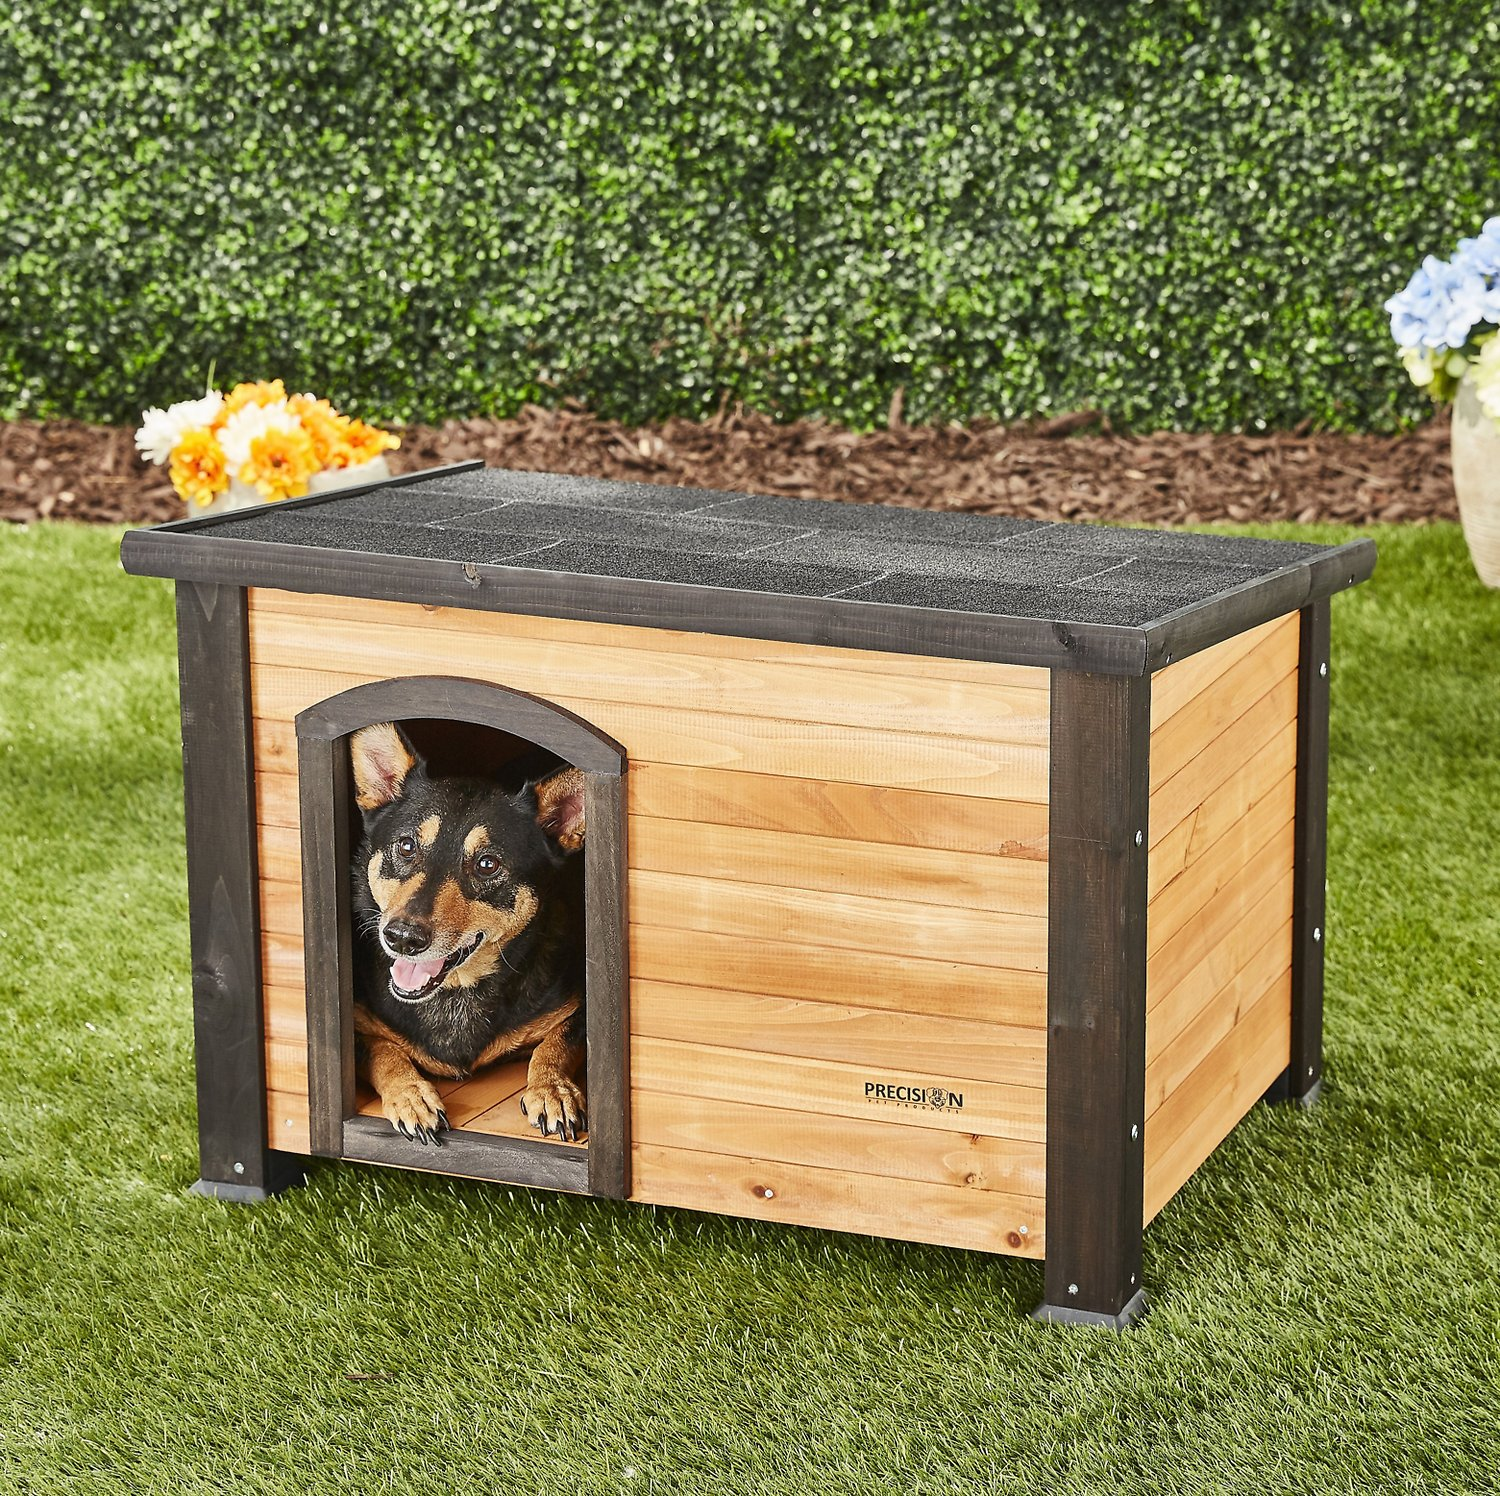 Dog House Precision Pet Products Extreme Outback Log Cabin Dog House Small